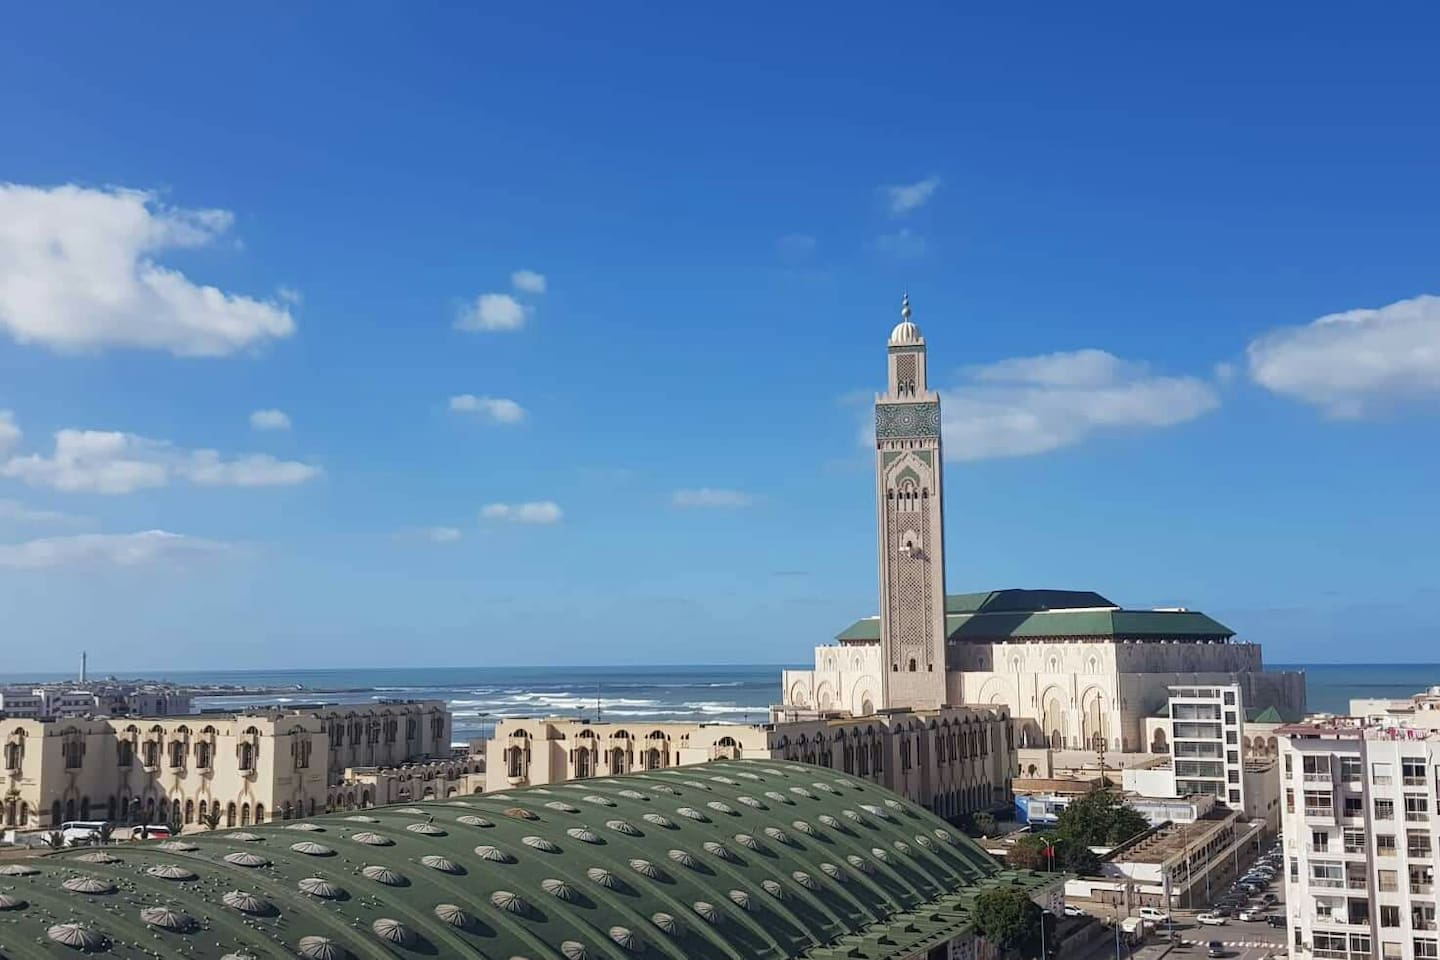 A panoramic view of the Hassan ll Mosque compound with the Atlantic Ocean in the back ground visible from the balcony and guest rooms